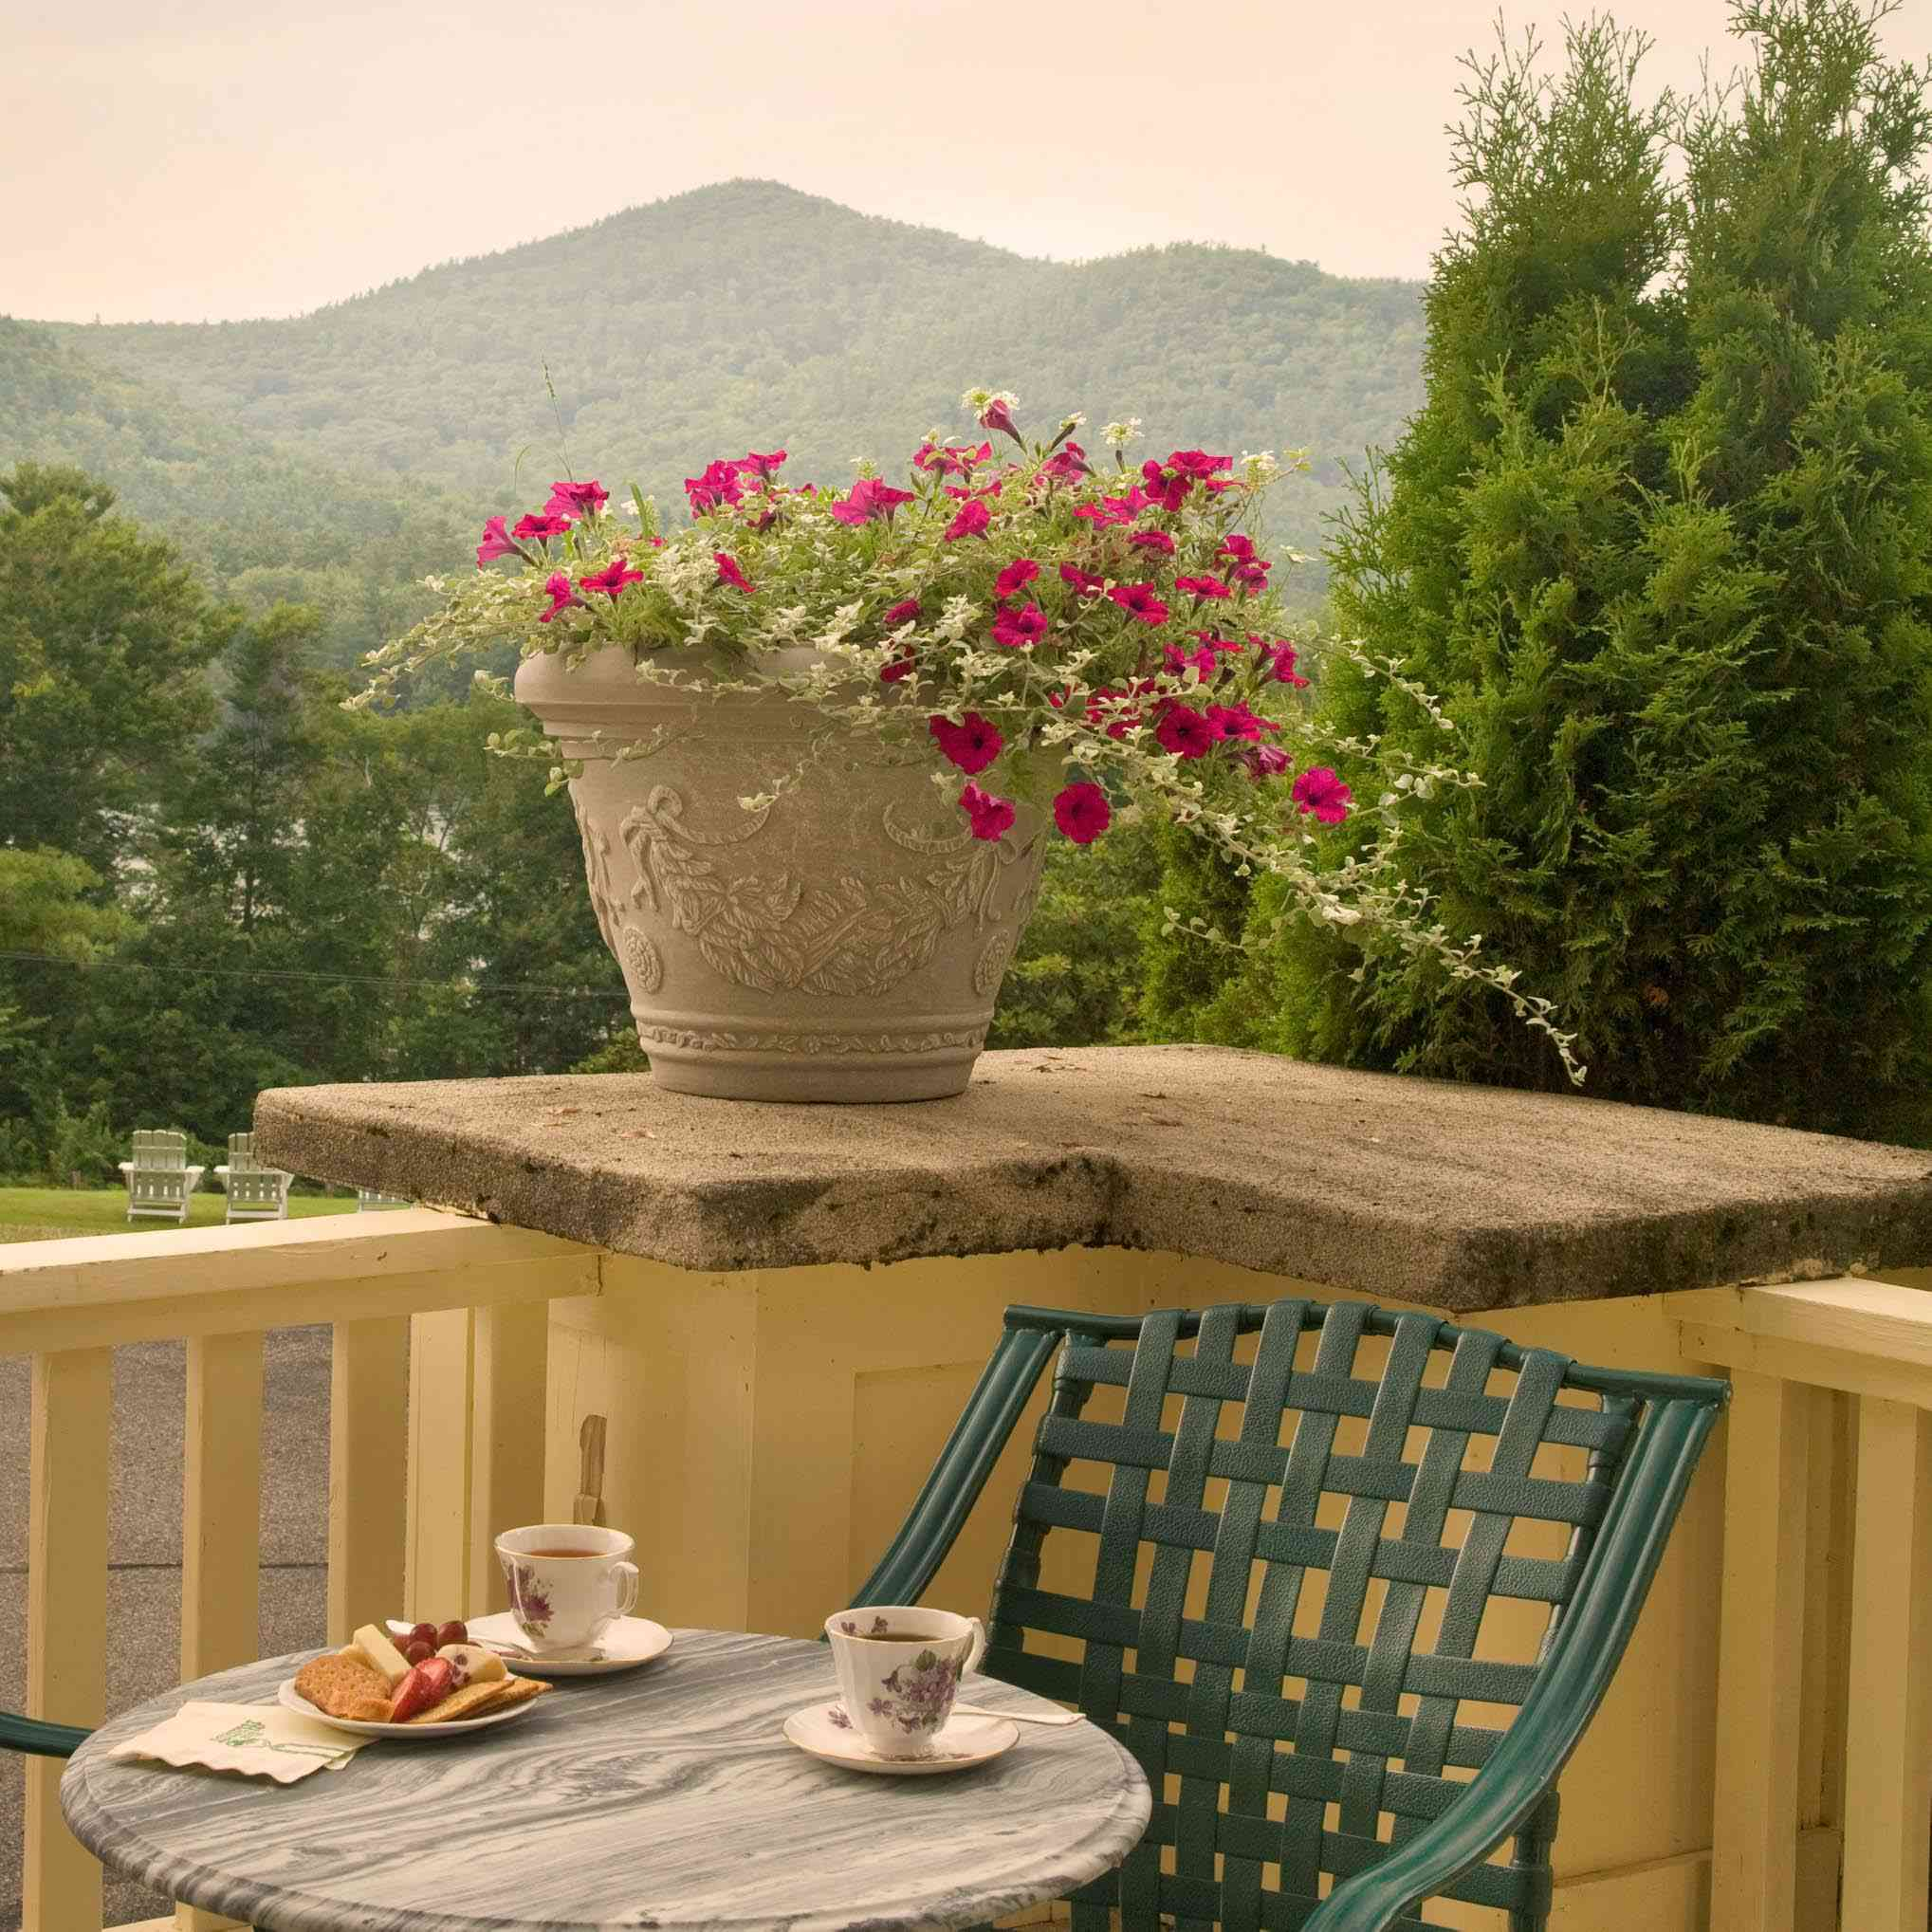 A chair on a patio overlooking mountains